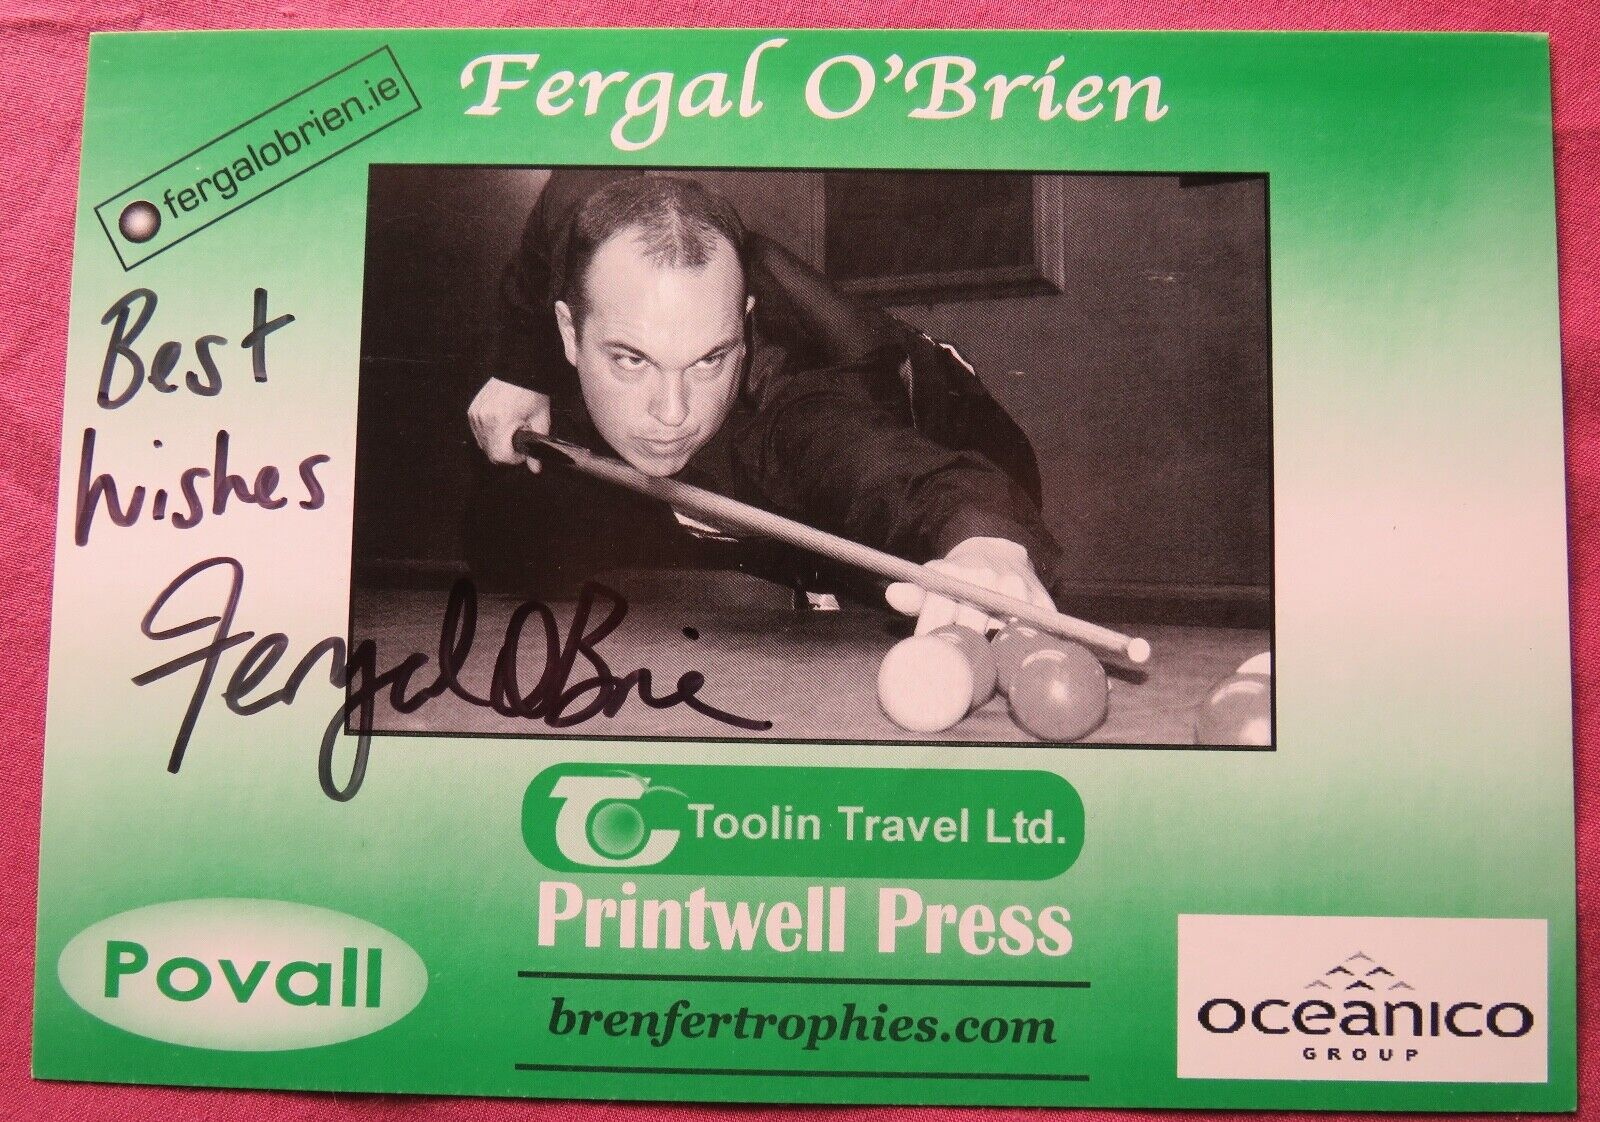 Fergal O'Brien signed Snooker Promotional Advertising card